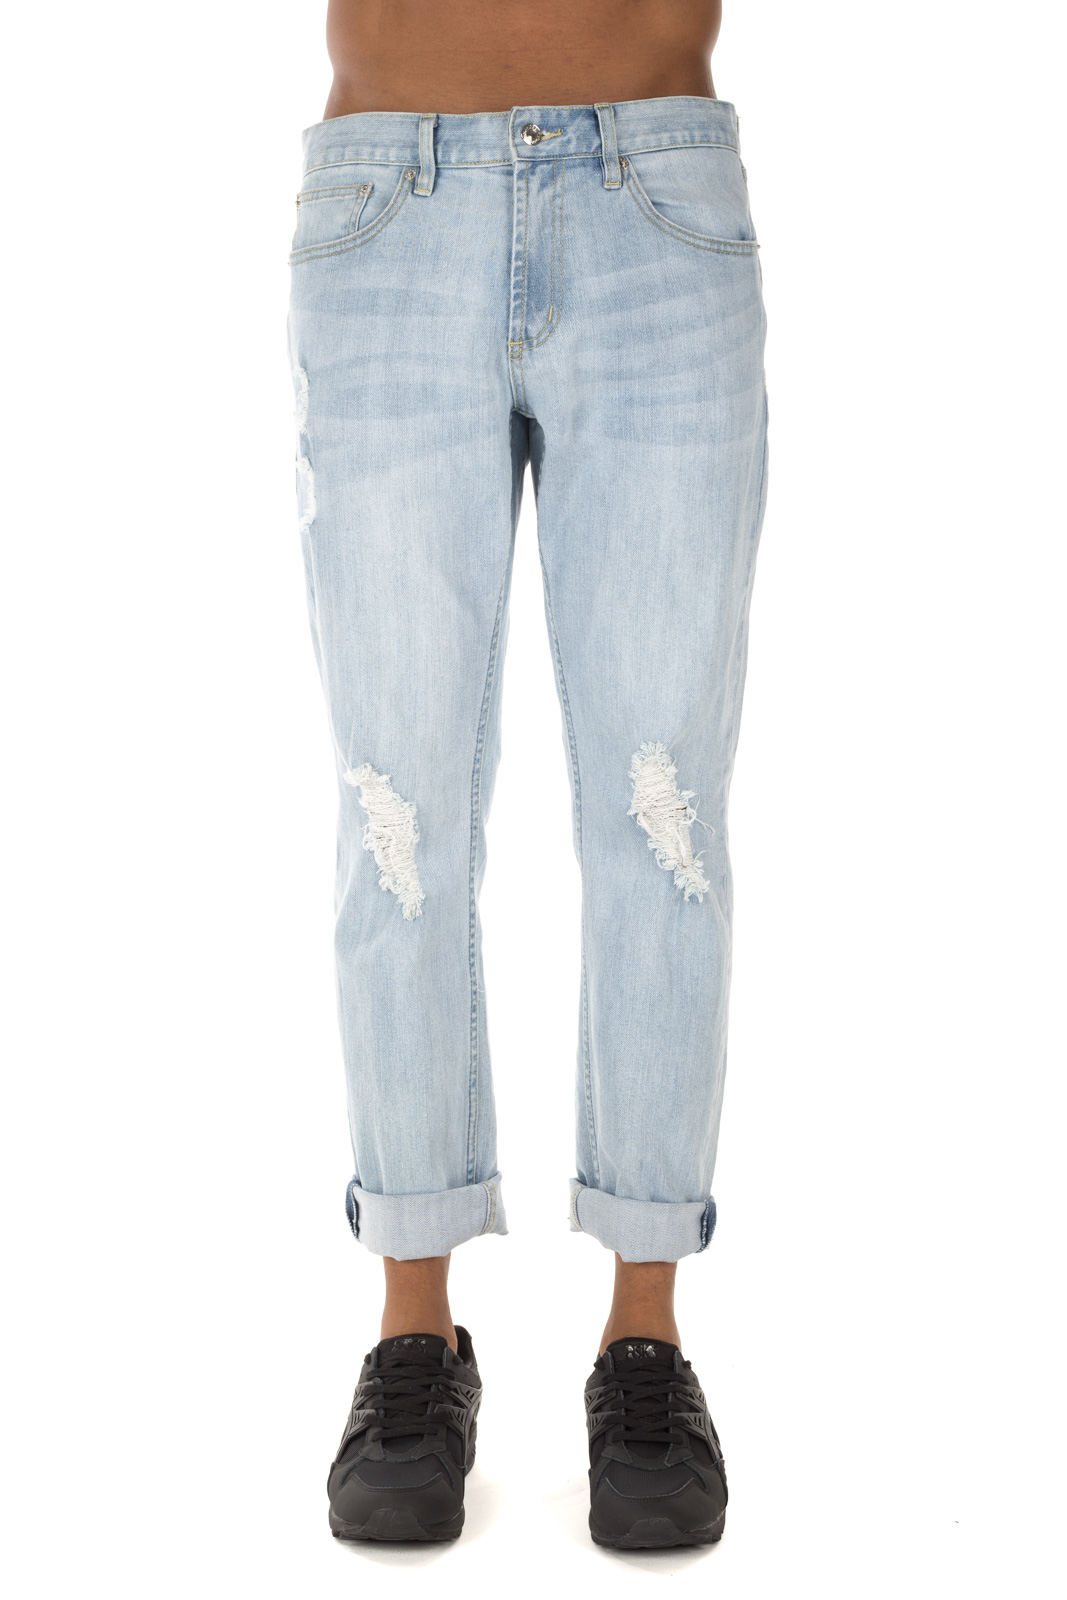 Obey - Juvee Jeans Light wash